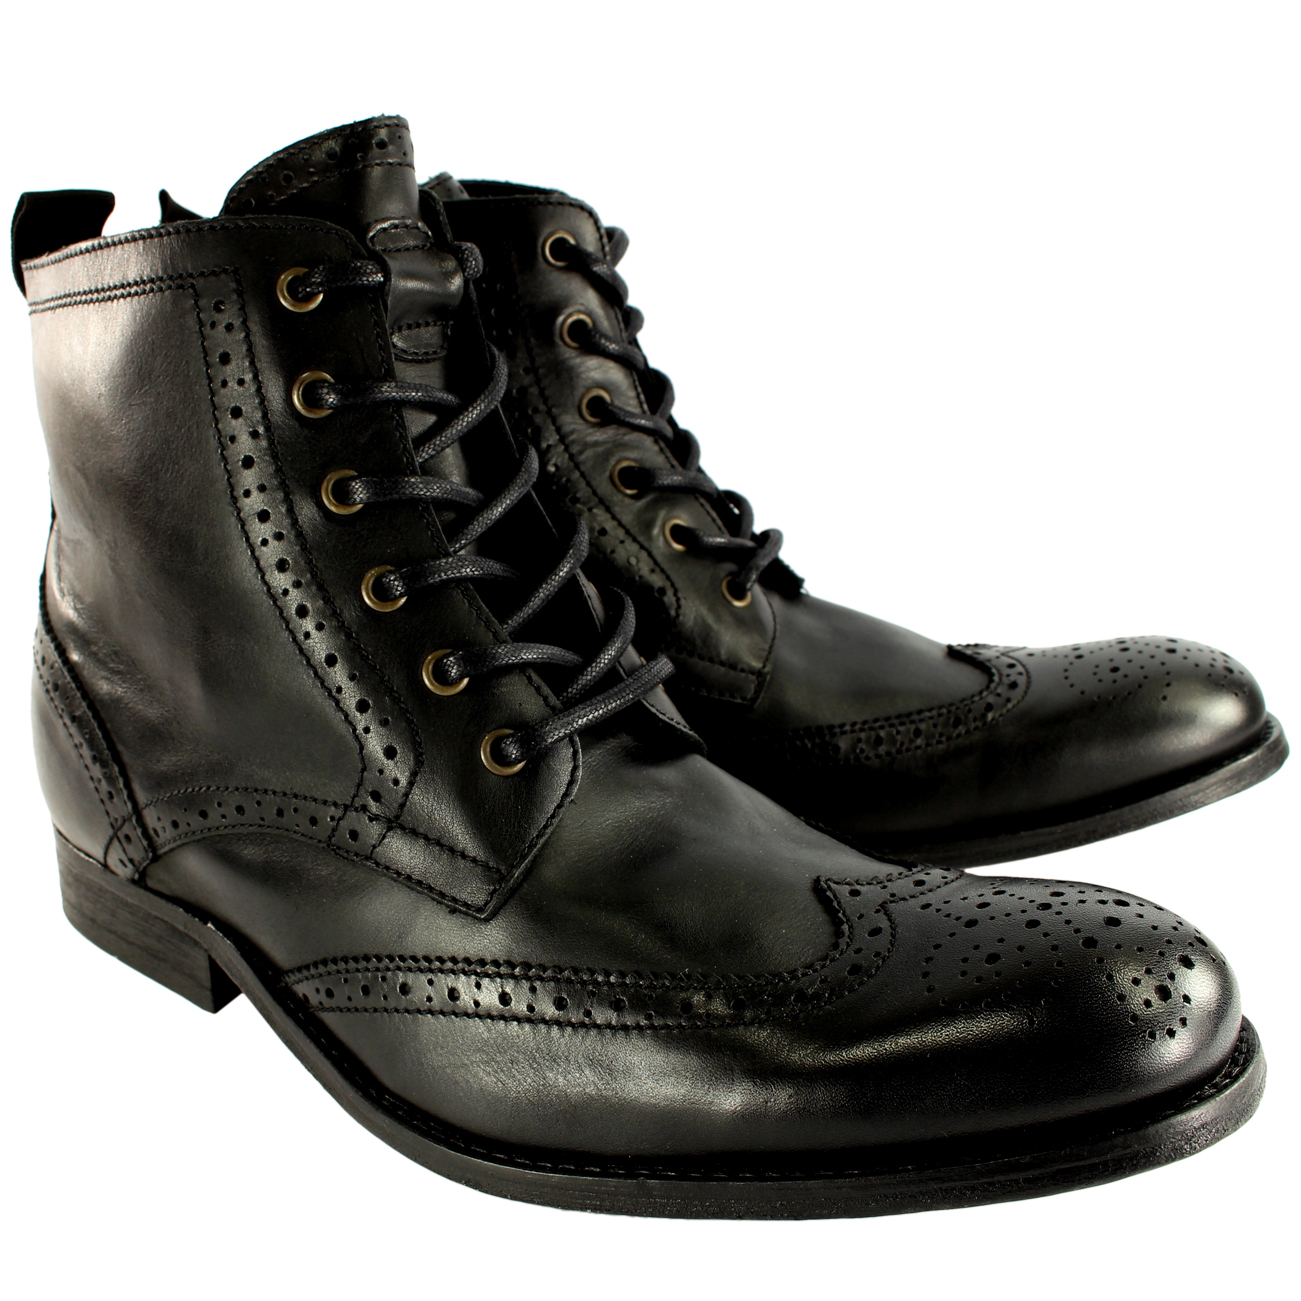 H By Hudson Angus Brouge Smart Boots